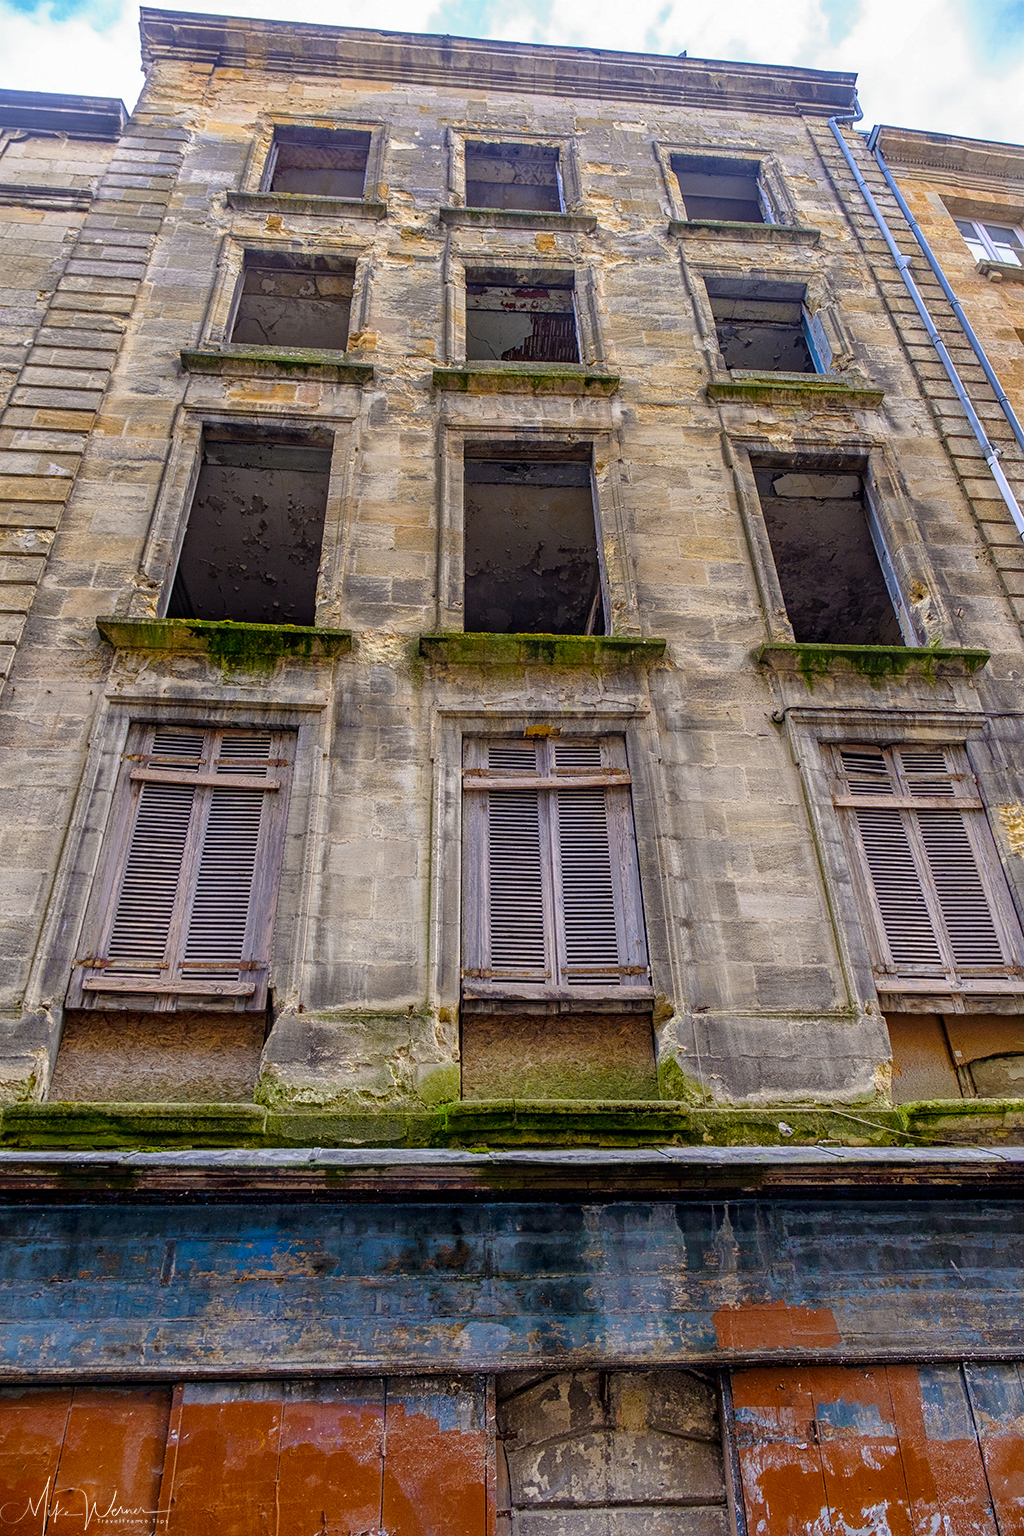 Dilapidated and polluted building in Bordeaux